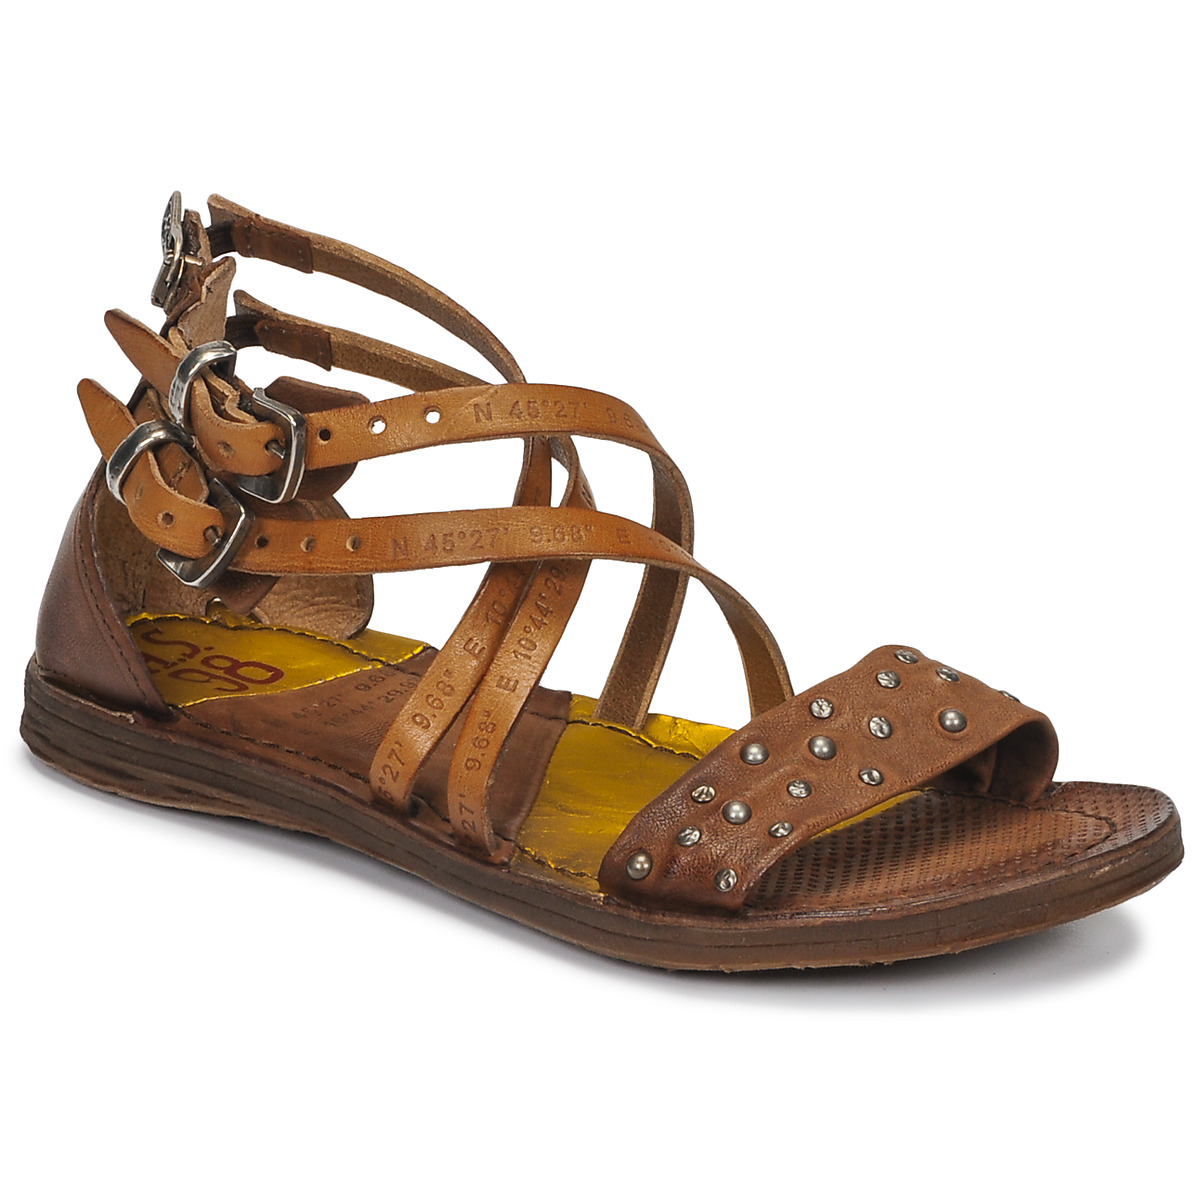 airstep / a.s.98  ramos clou  women's sandals in brown